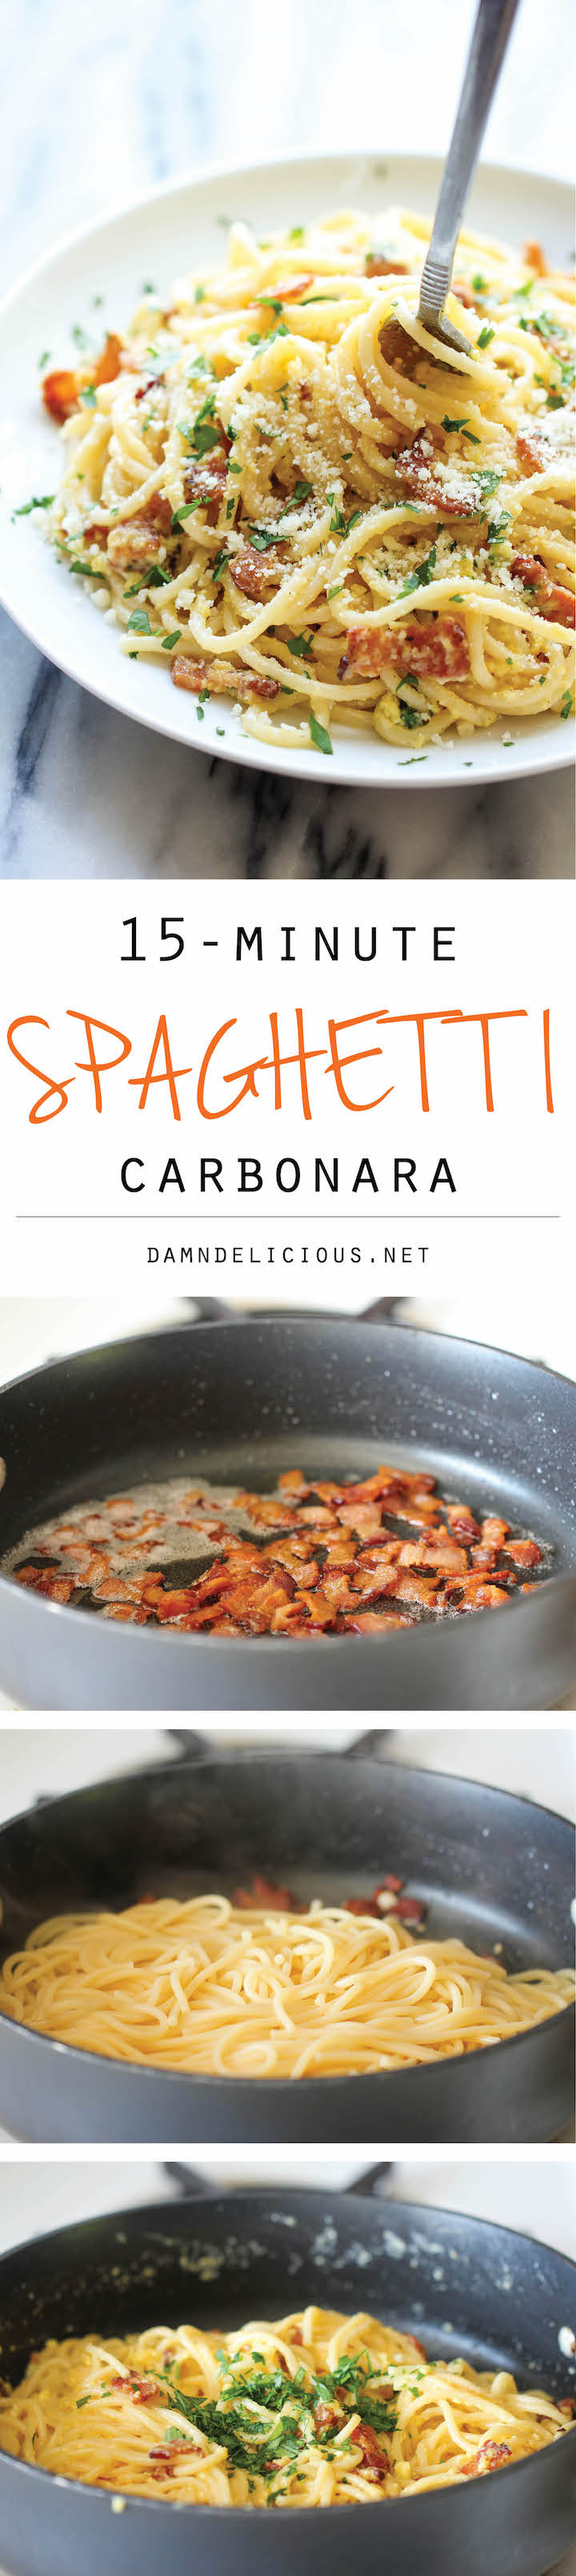 Spaghetti Carbonara Damn Delicious Signature Male White Hd Red The Easiest Pasta Dish You Will Ever Make With Just 5 Ingredients In